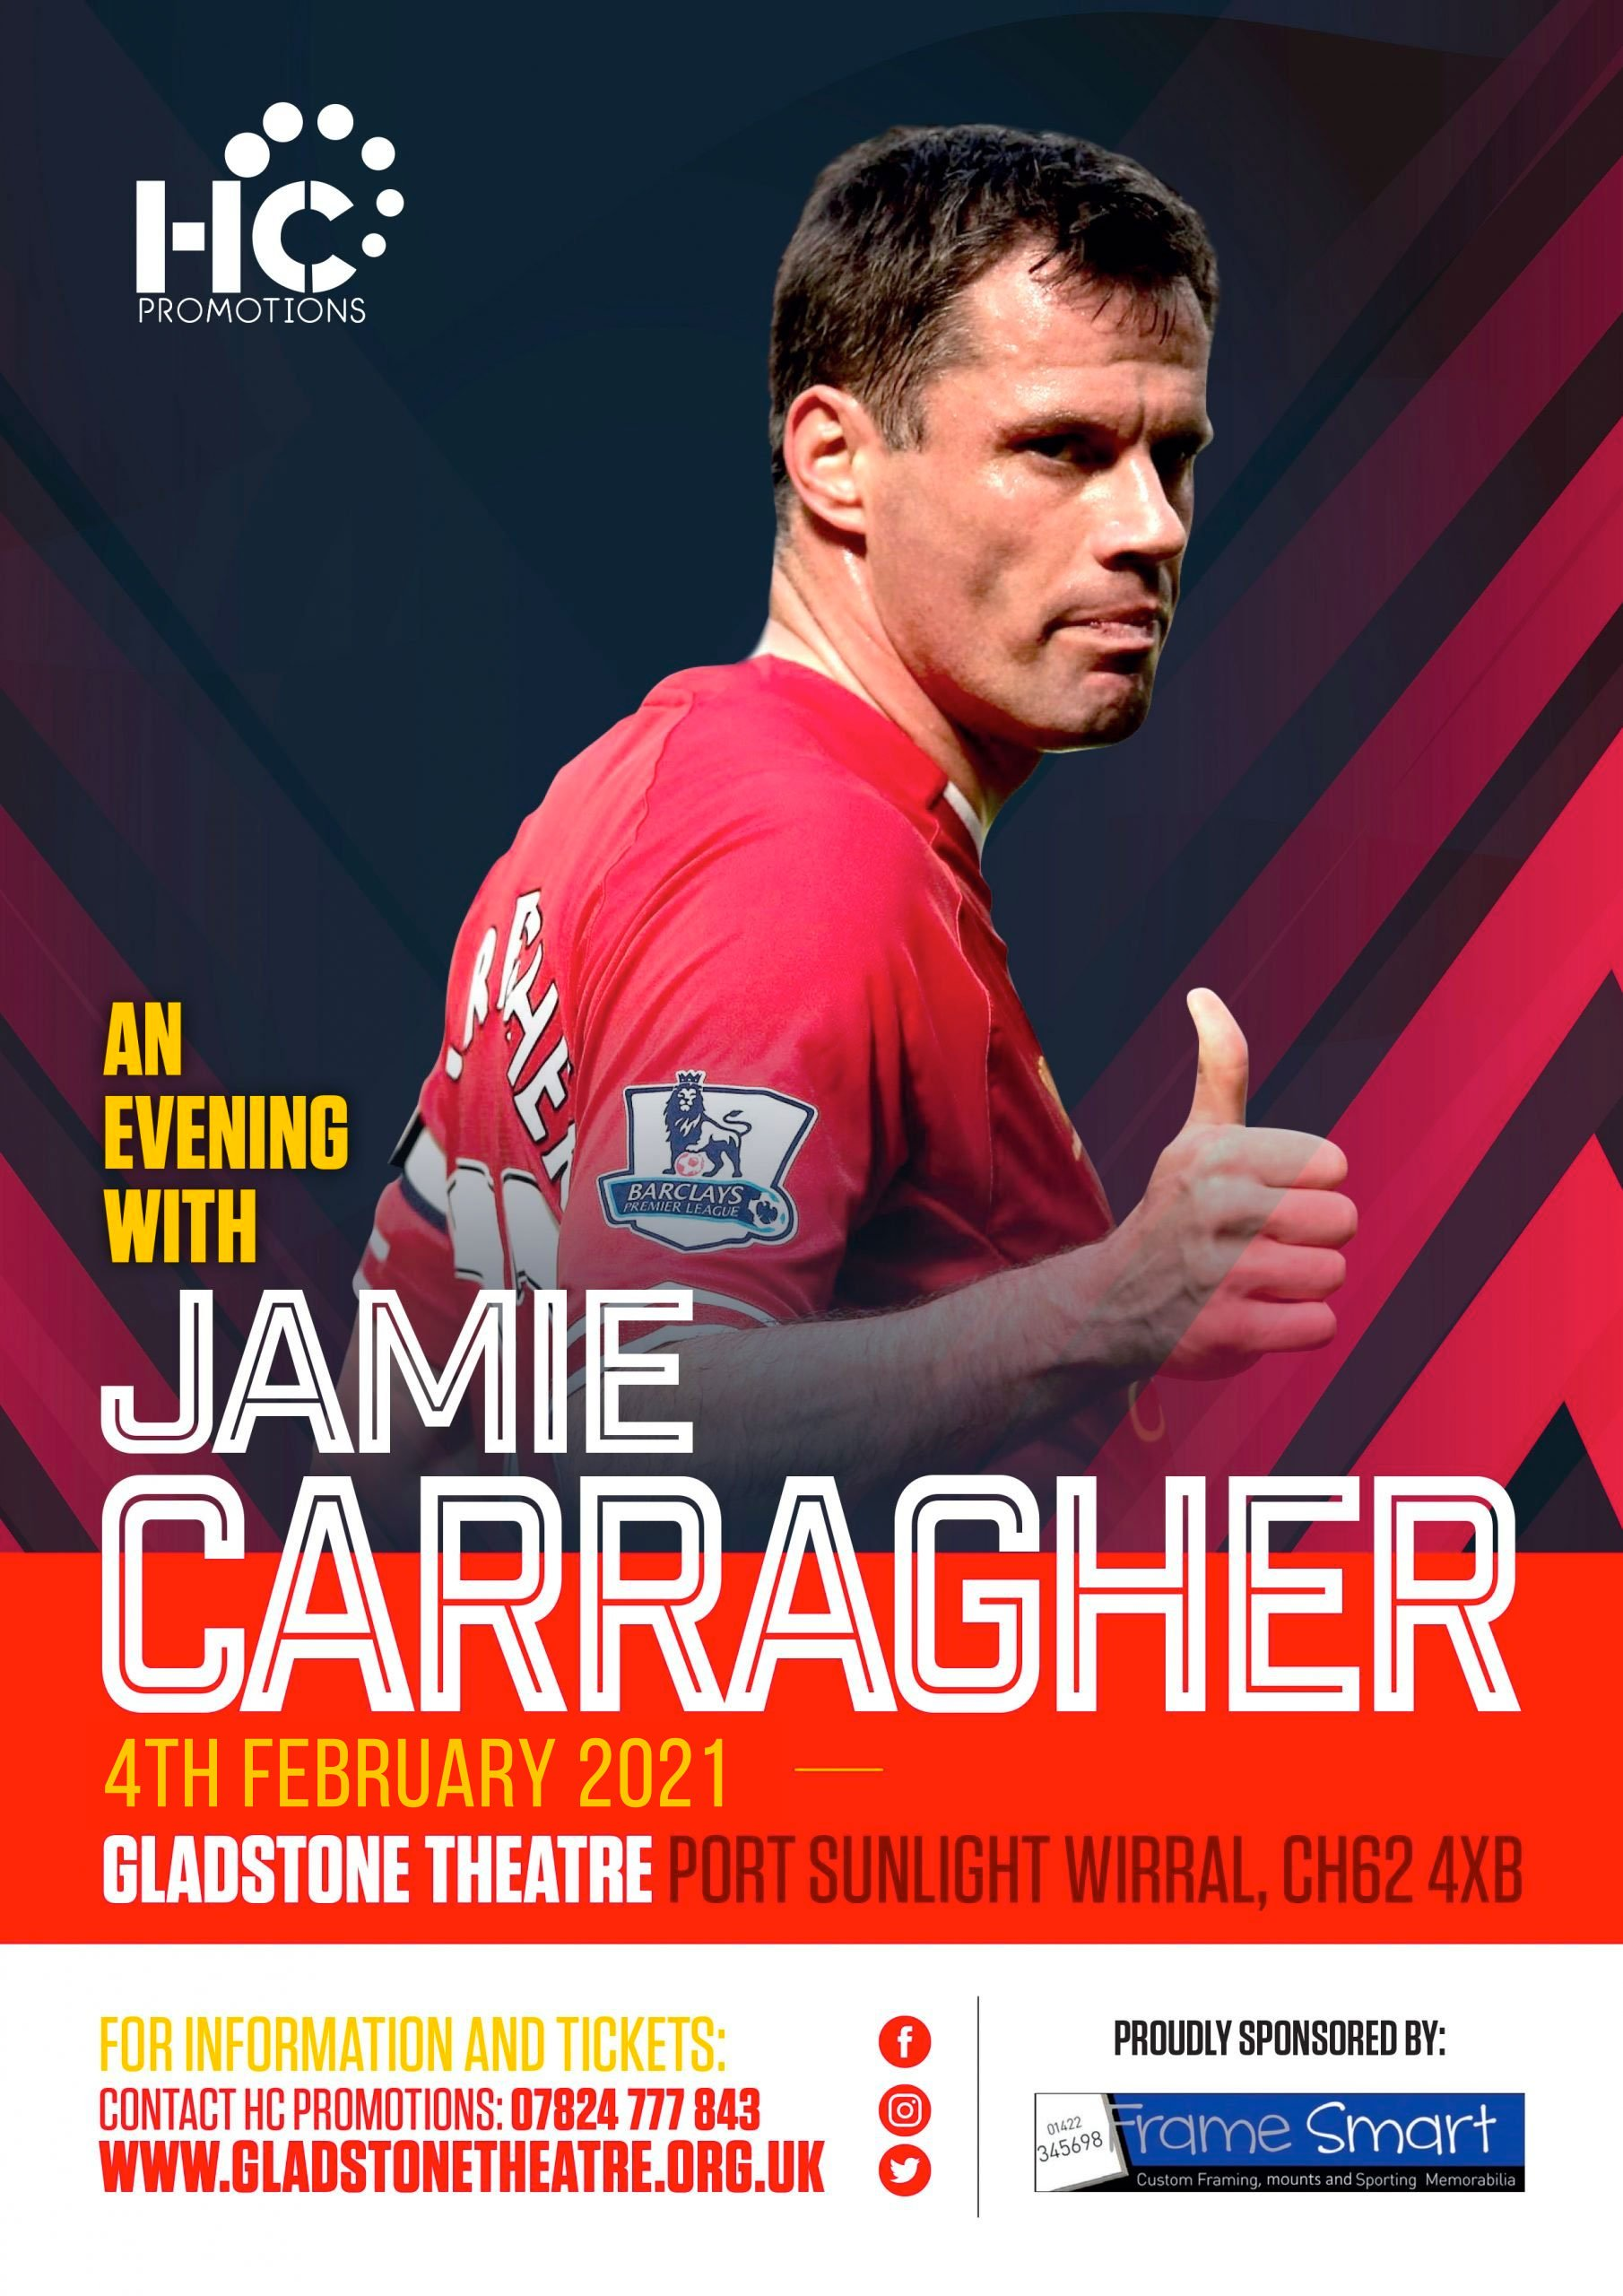 An Evening With Jamie Carragher